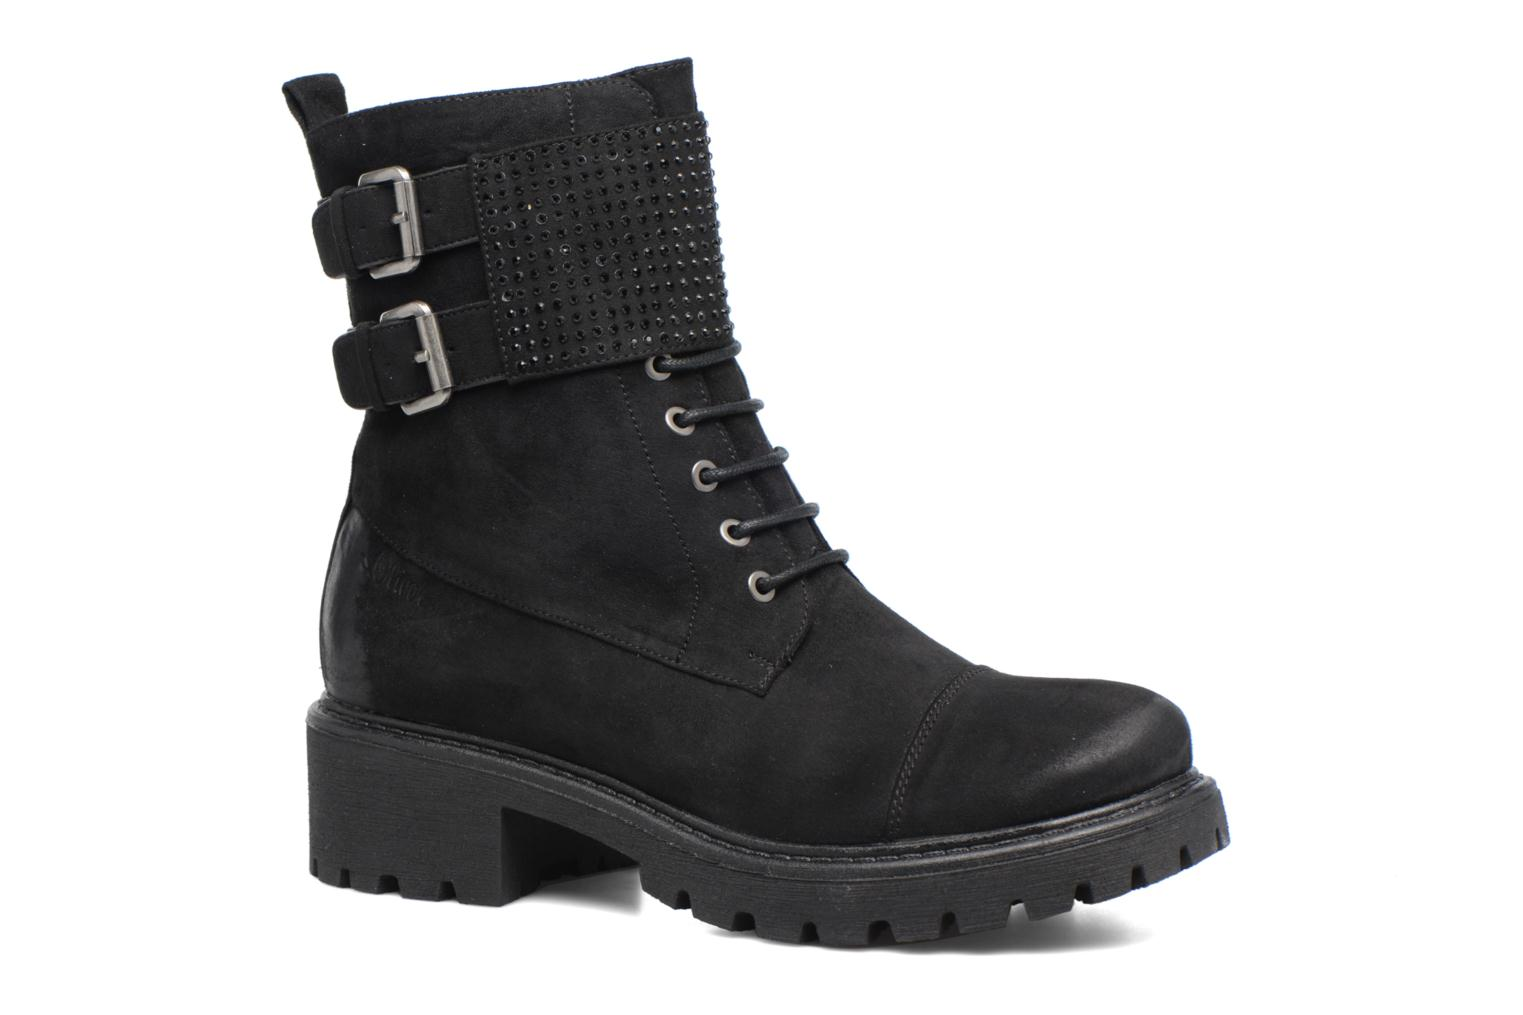 ZapatosS.Oliver  Hannah (Negro) - Botines  ZapatosS.Oliver   Casual salvaje a13d04